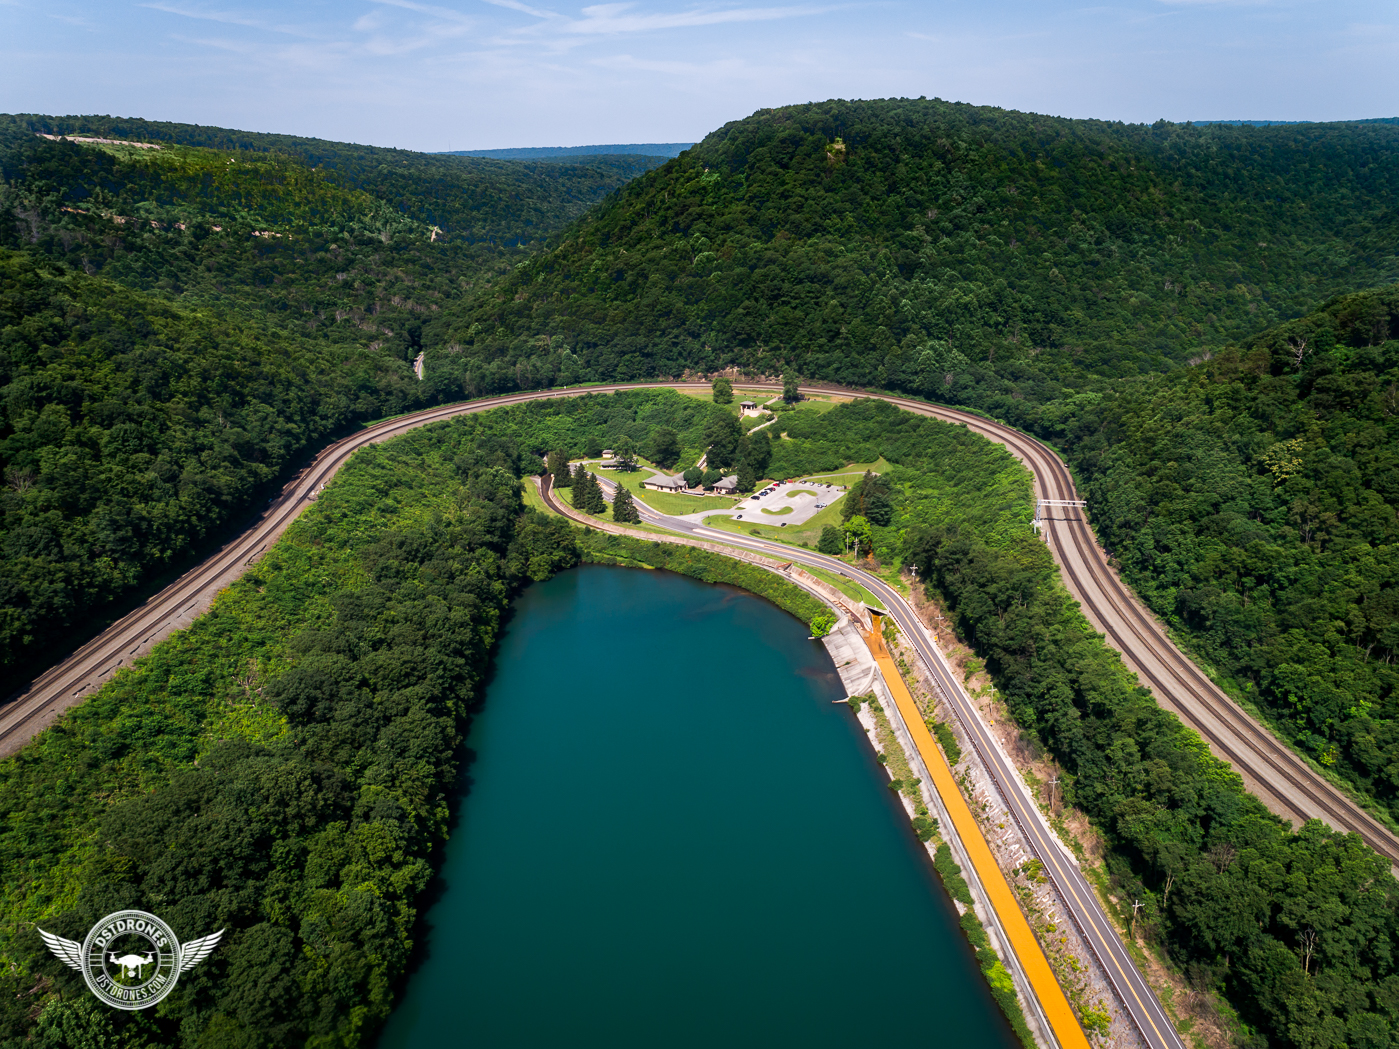 Horseshoe Curve Summer-1-2.jpg